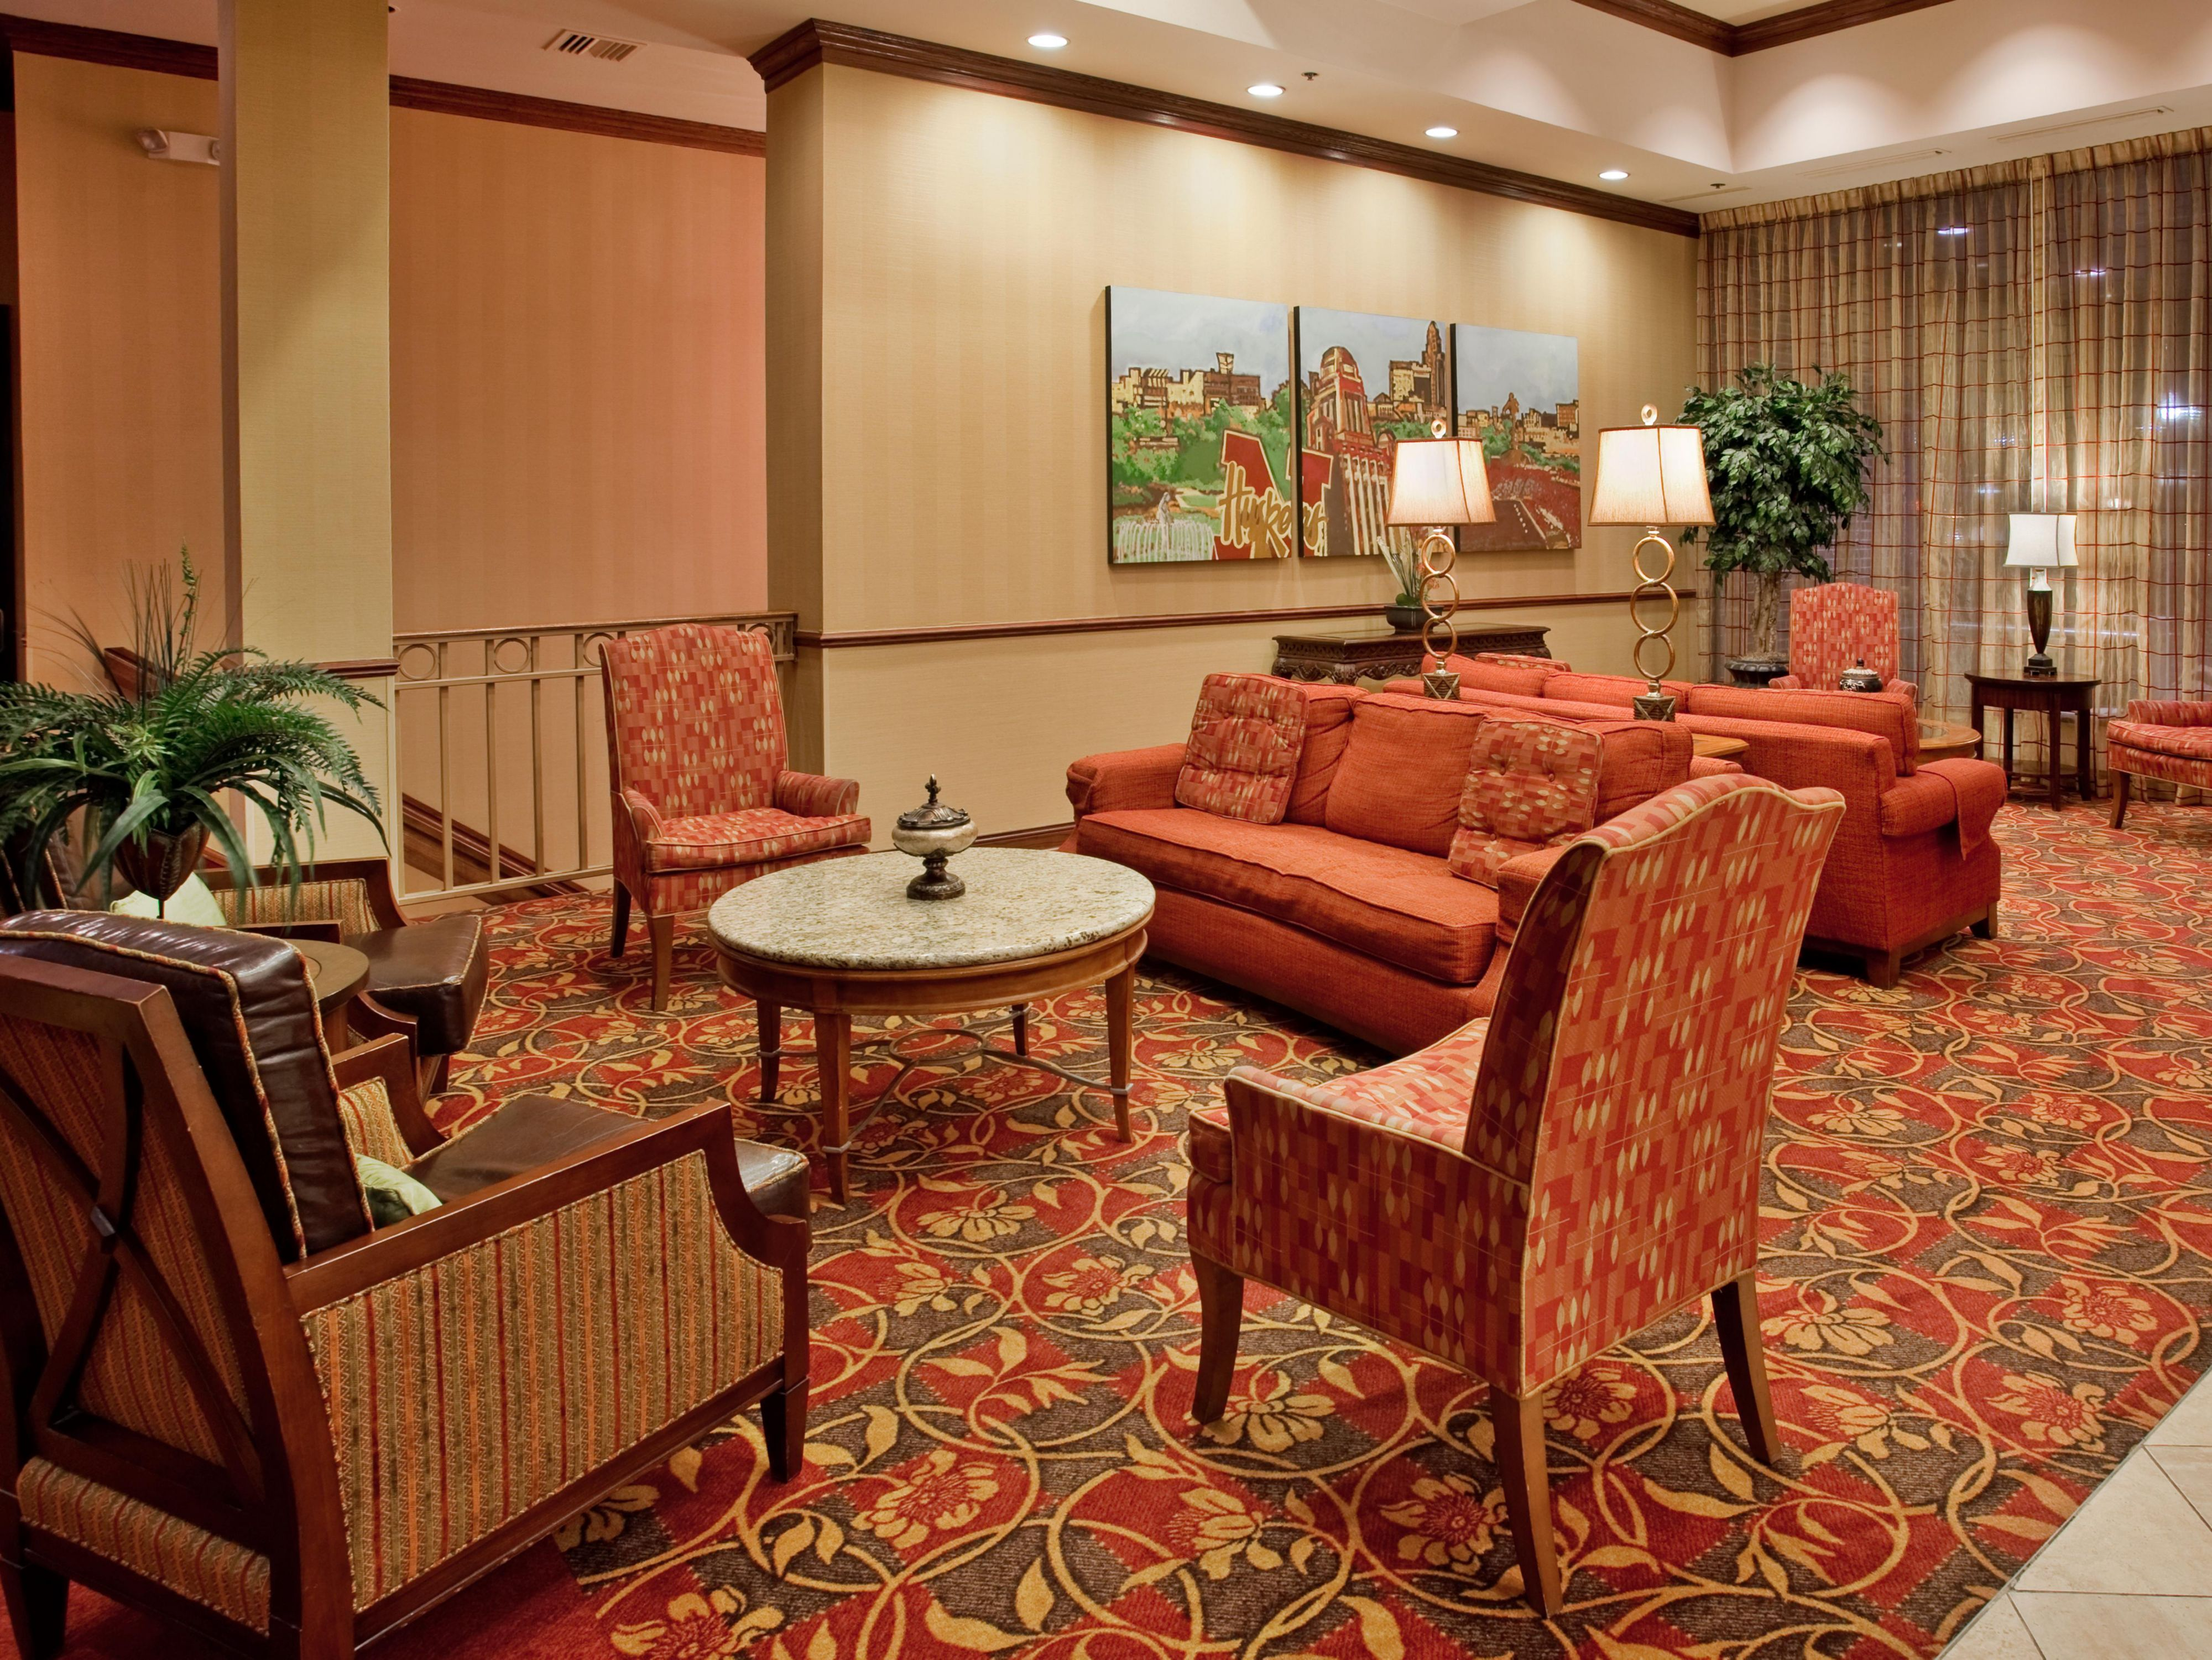 Newly renovated lobby lounge with comfortable seating